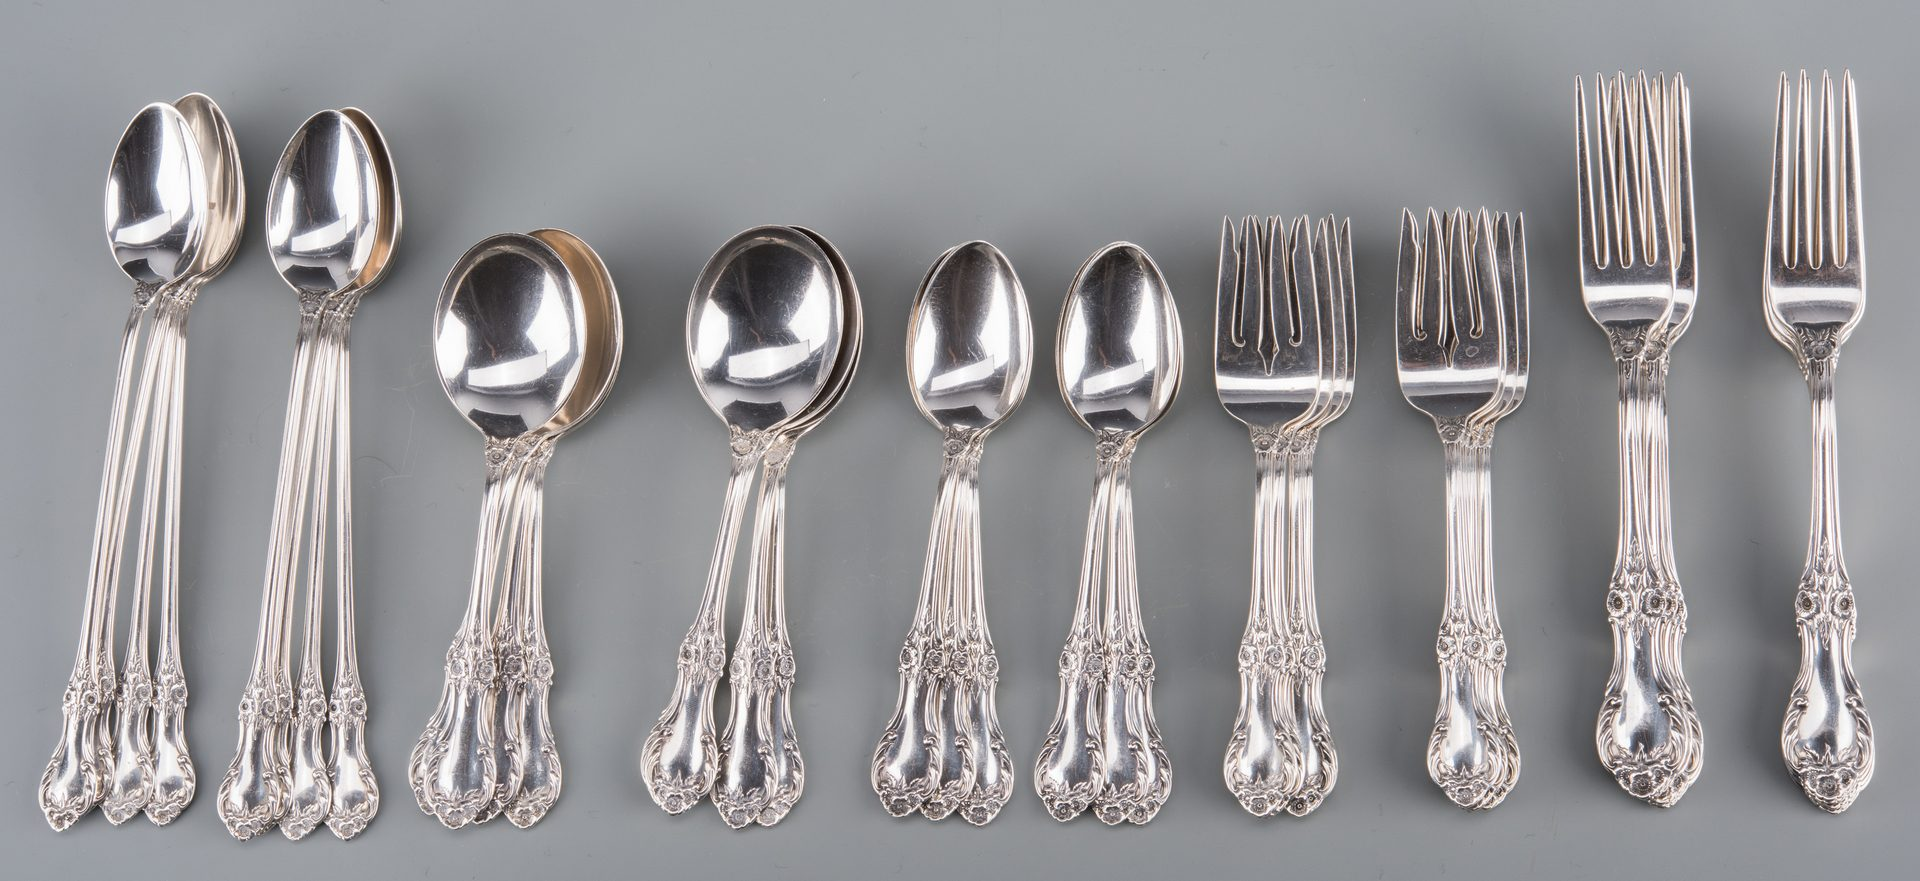 Lot 912: International Wild Rose Sterling Flatware, 48 pcs